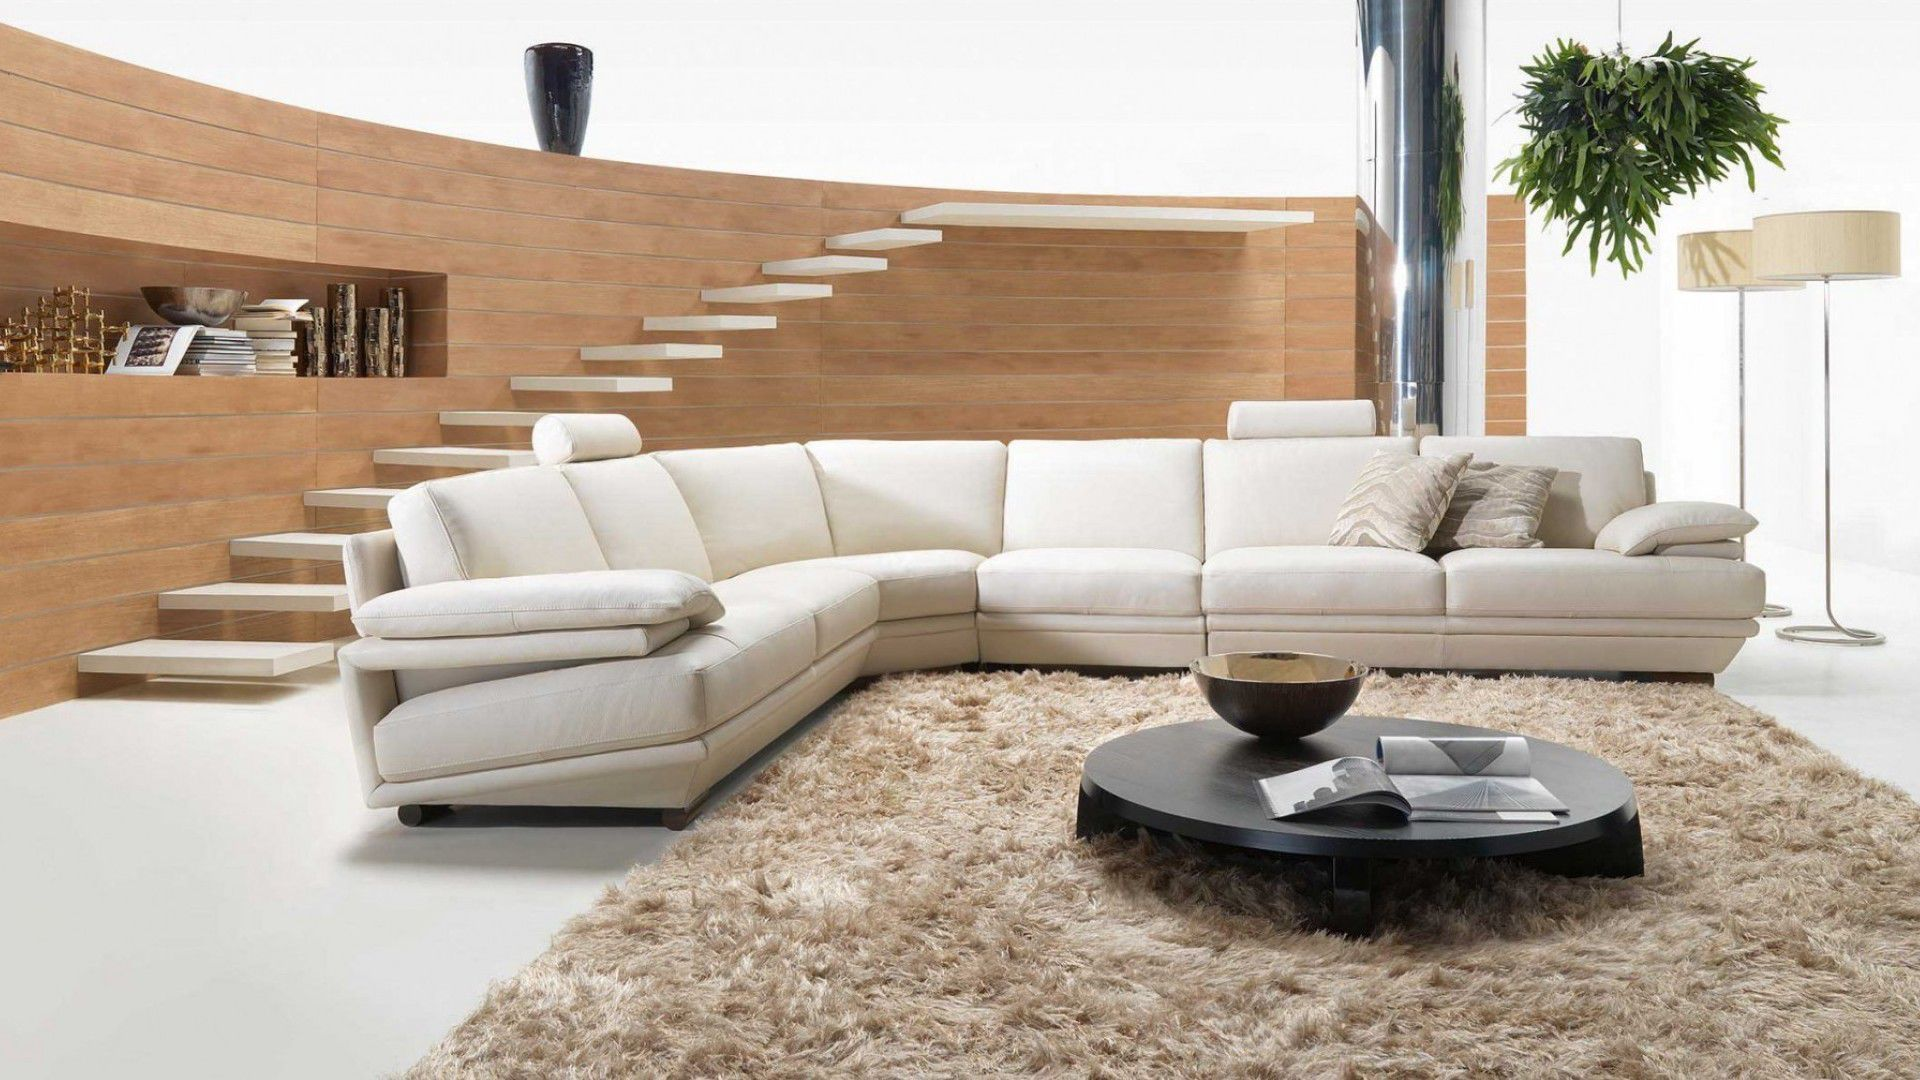 Miraculous Modular Sofa Contemporary Fabric Leather Plaza Alphanode Cool Chair Designs And Ideas Alphanodeonline